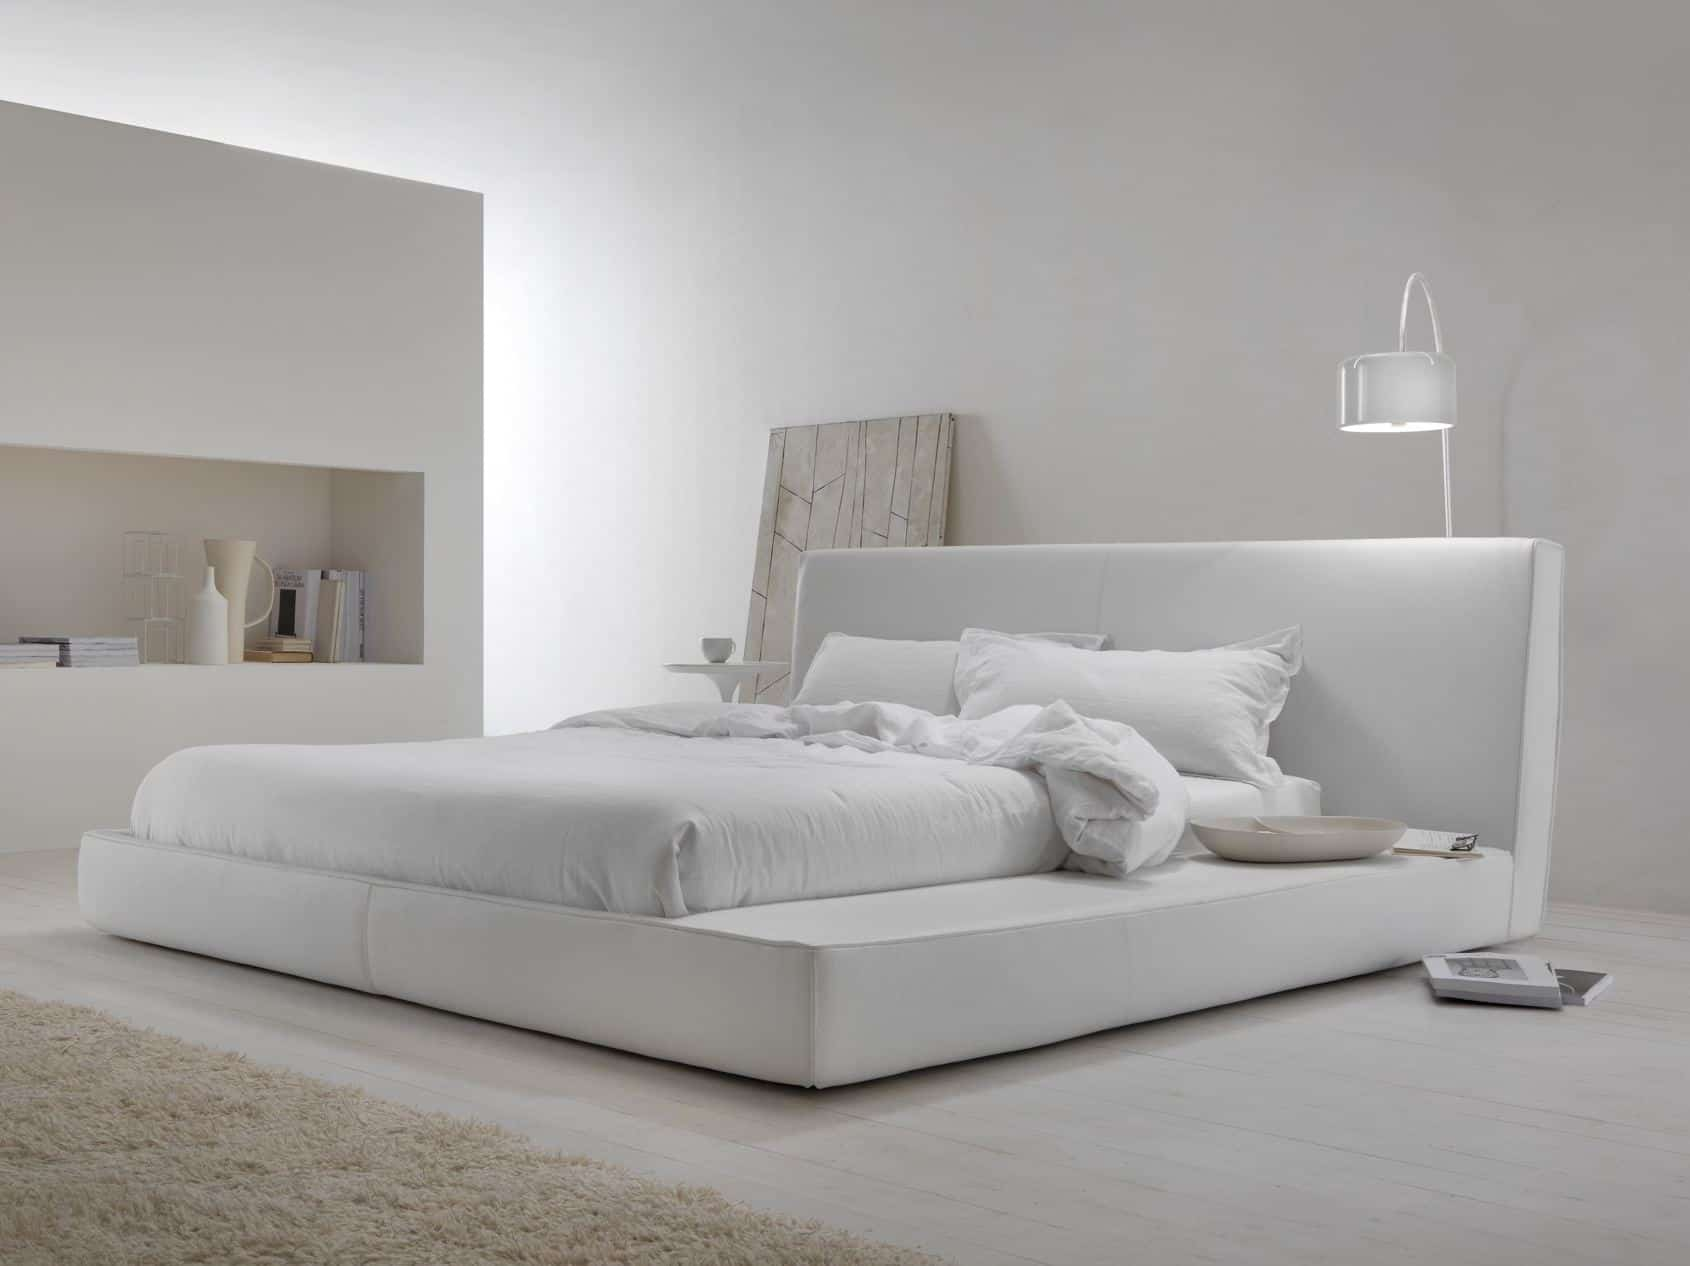 50 modern bedroom design ideas for Interior bedroom minimalist